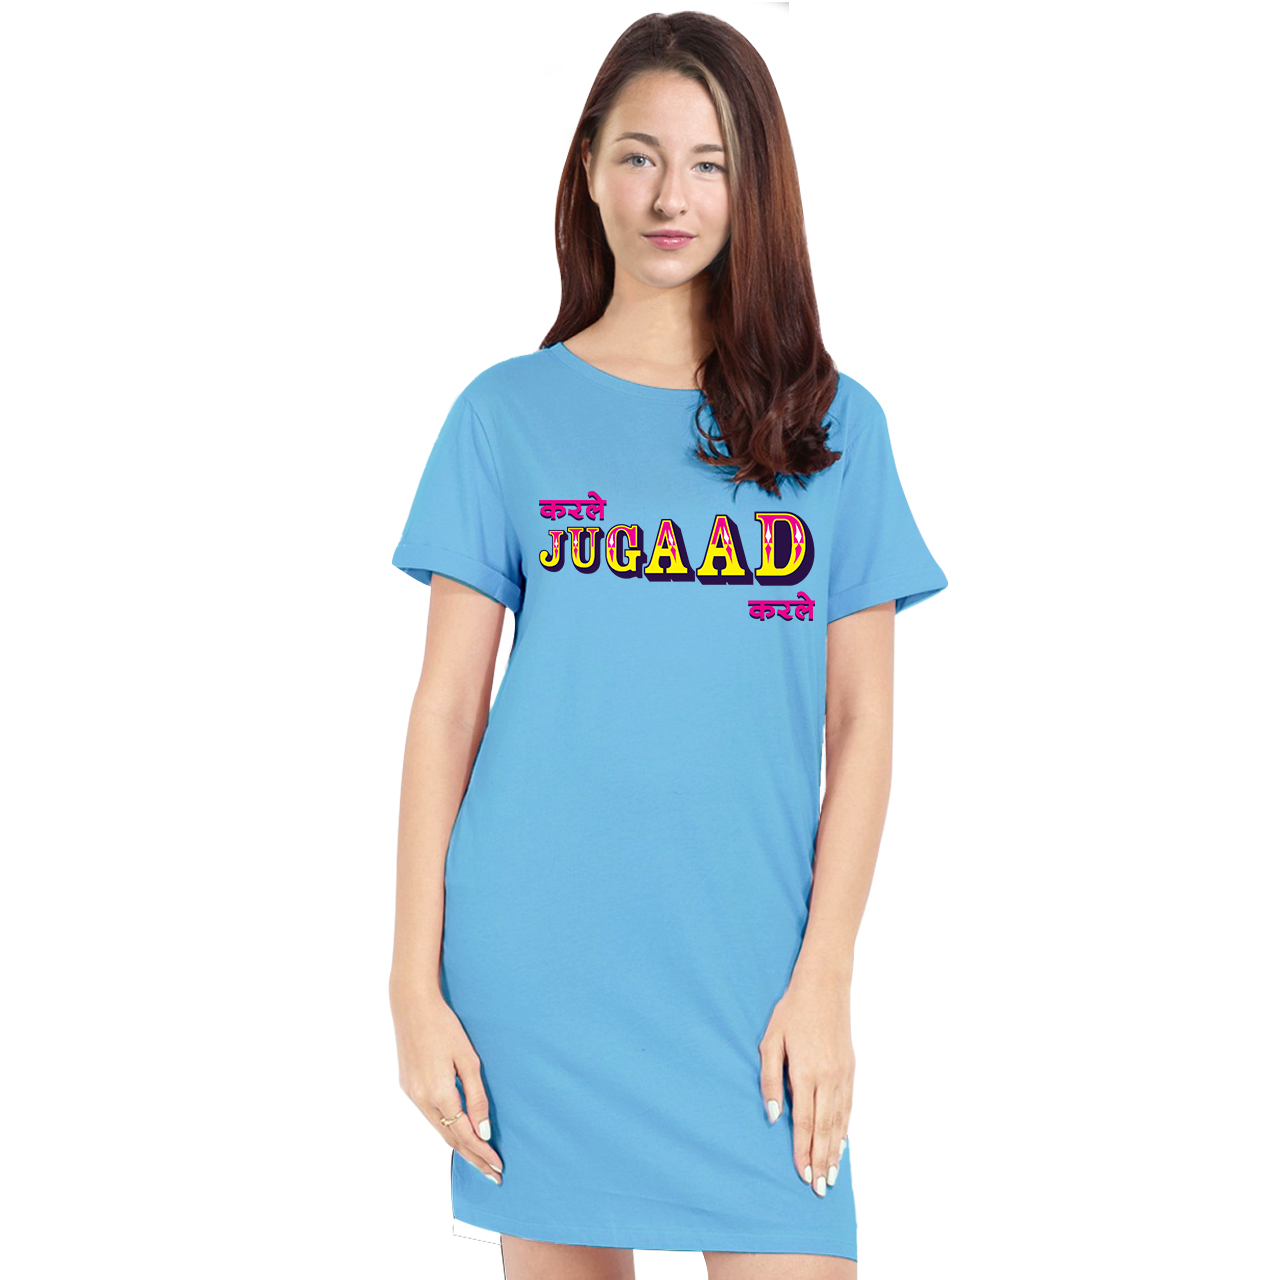 Bollywood T-Shirt Dresses for Women - Kar Le Jugaad